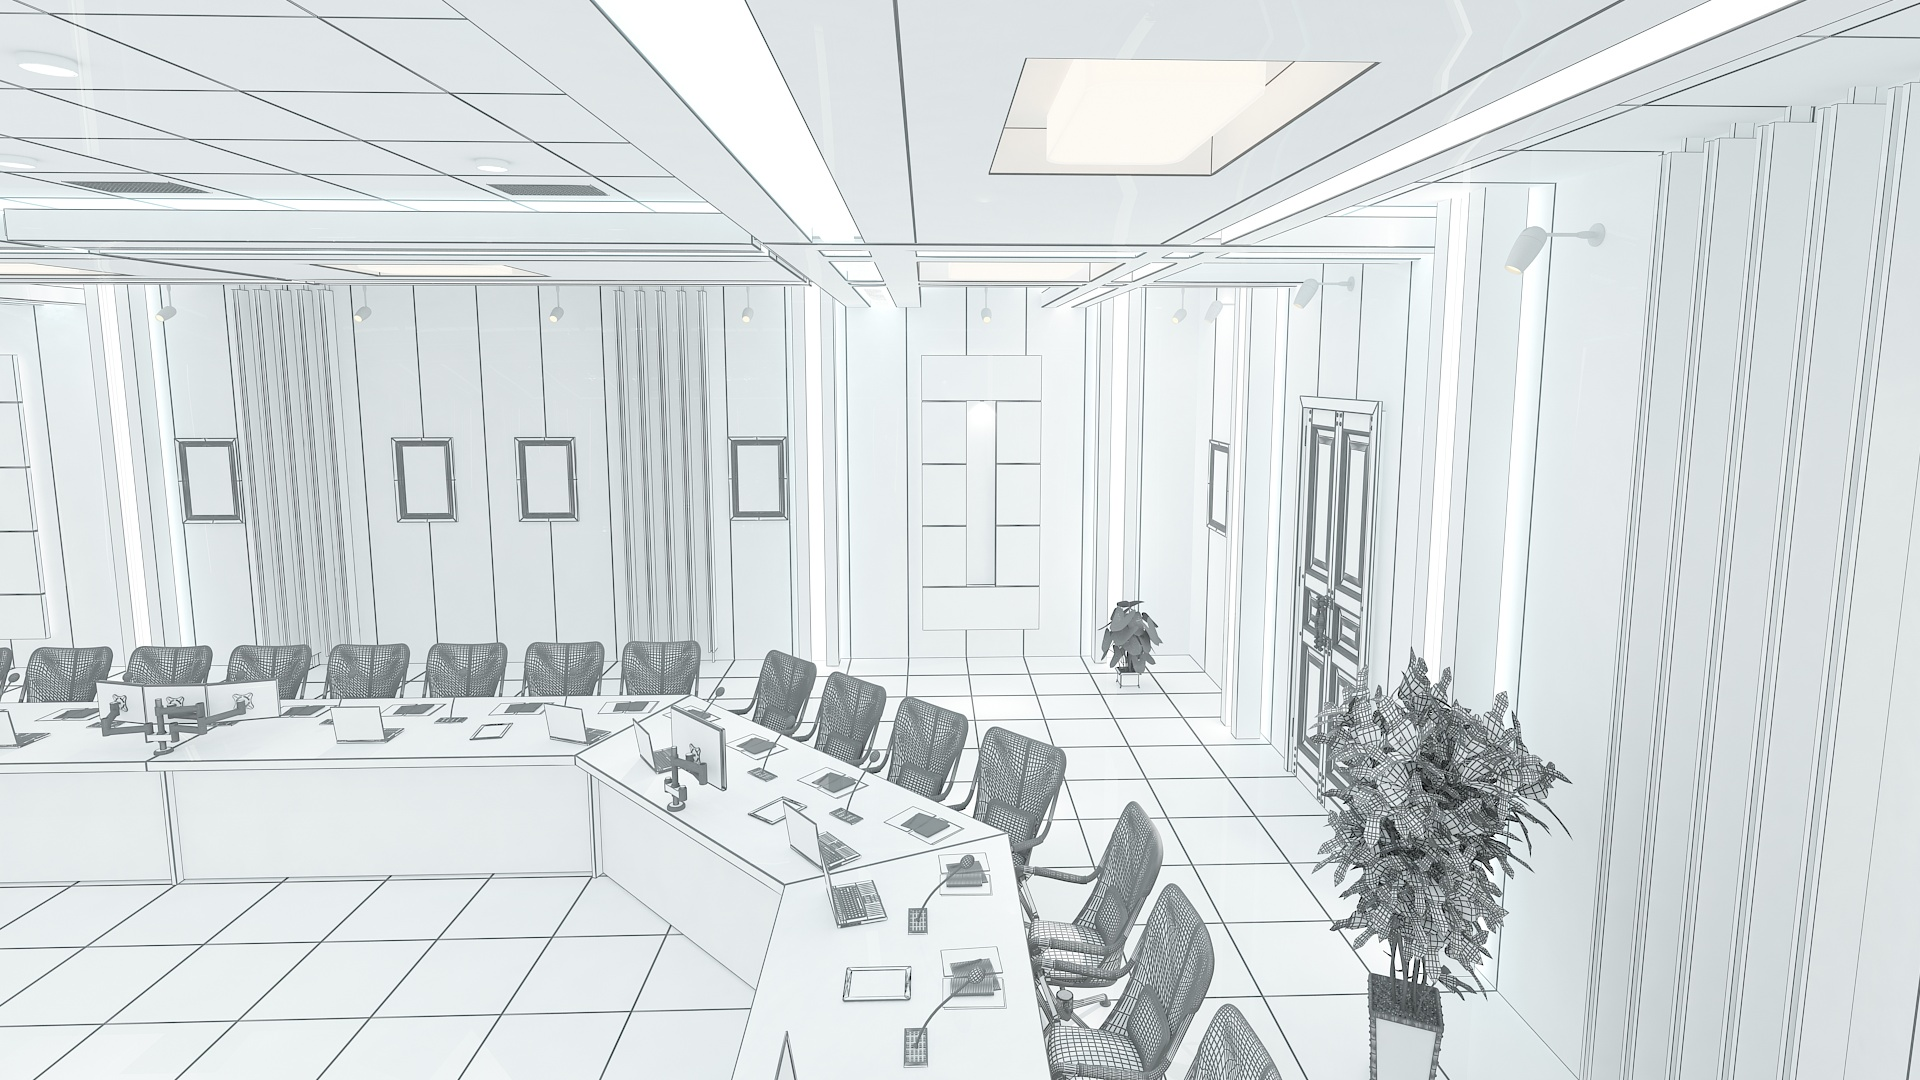 meeting room 1 3d model 3ds max dxf dwg 288133